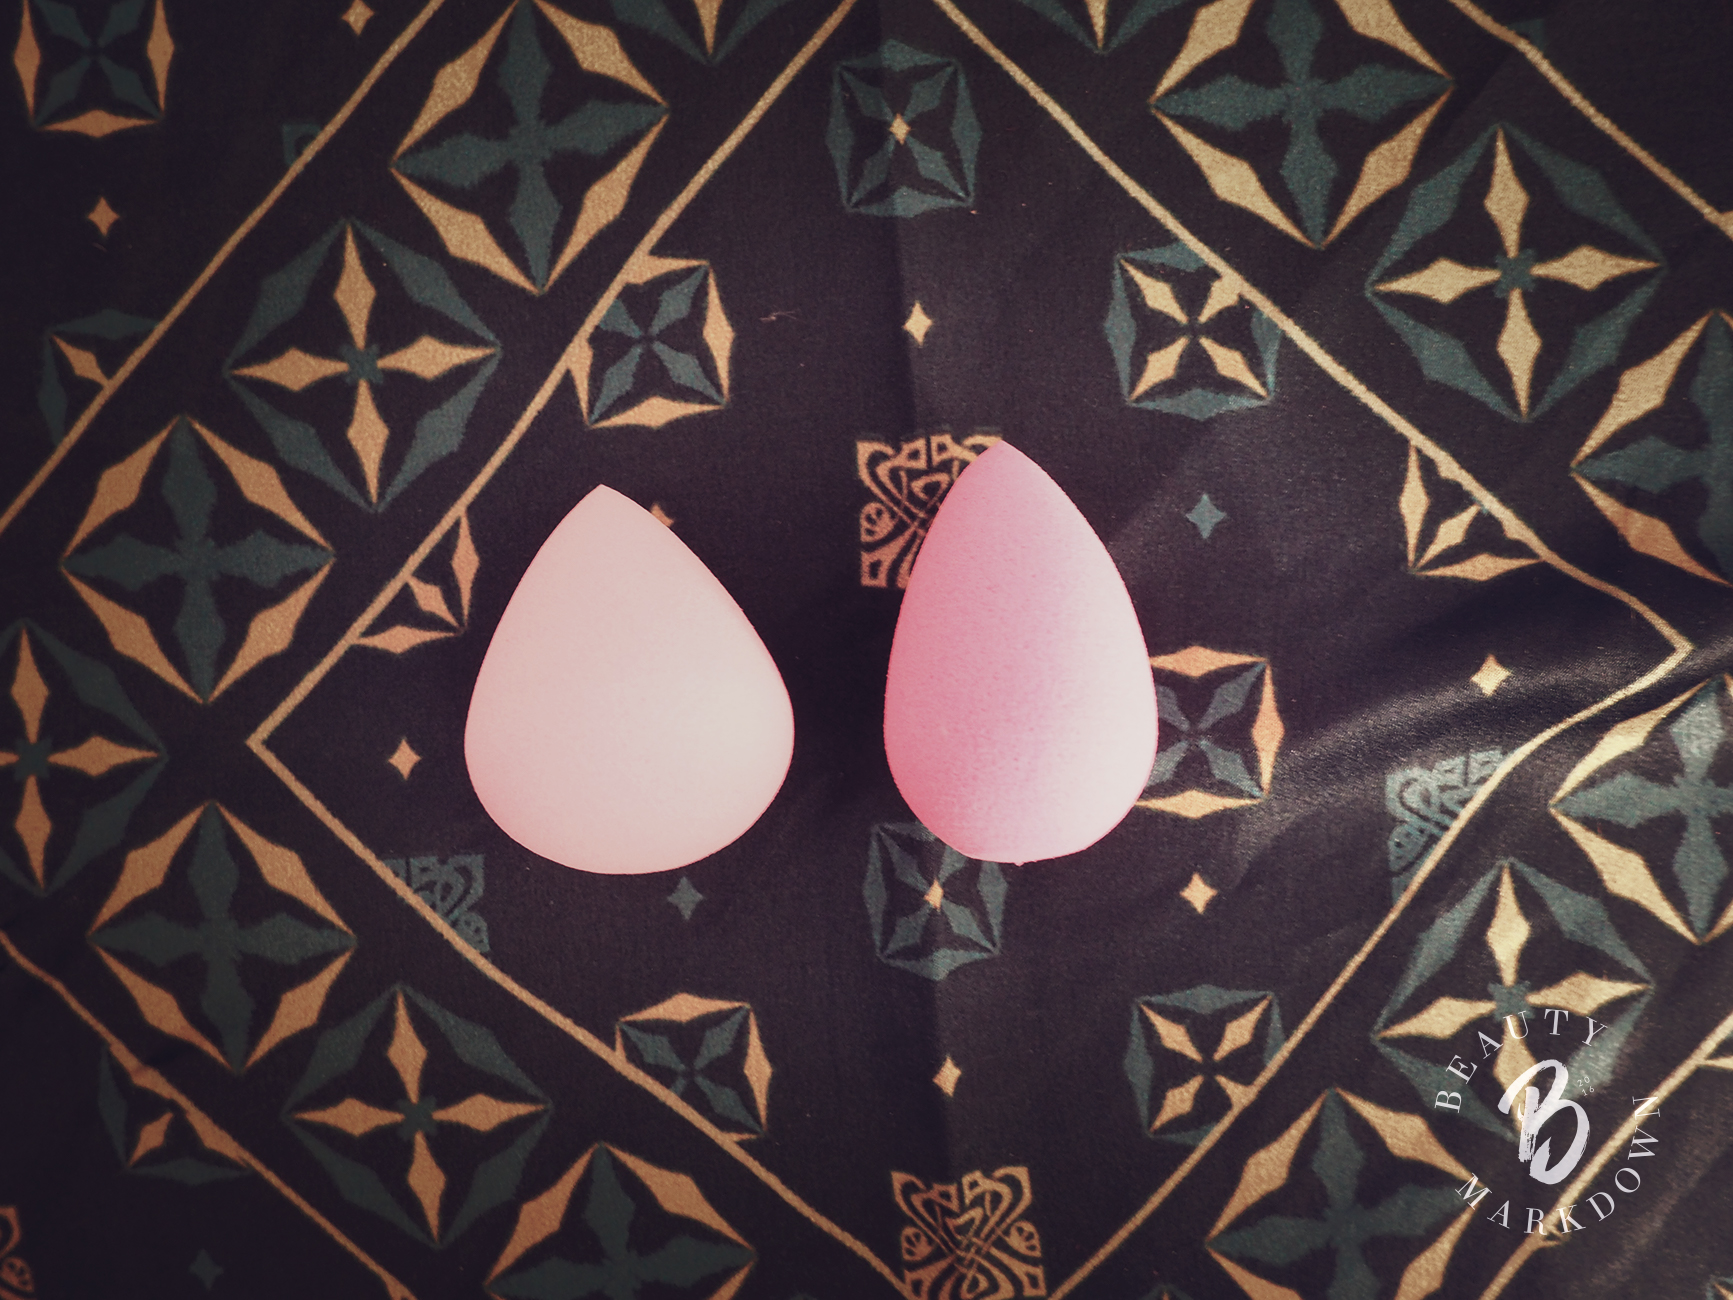 beautyblender dupe uk